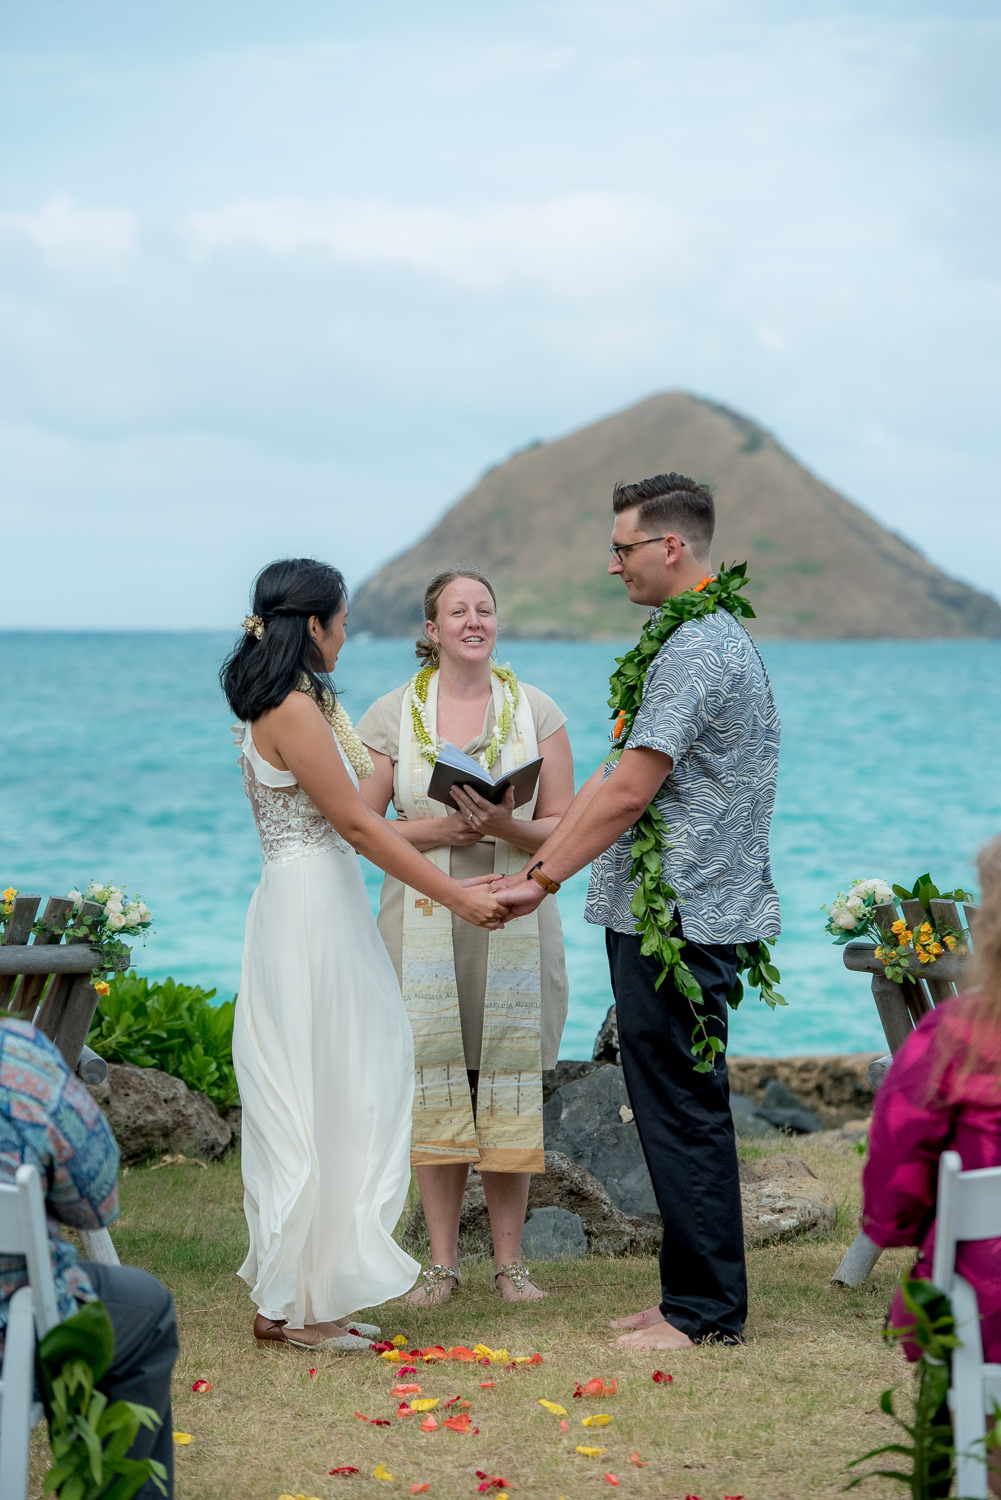 Getting married in front of the Mokulua islands